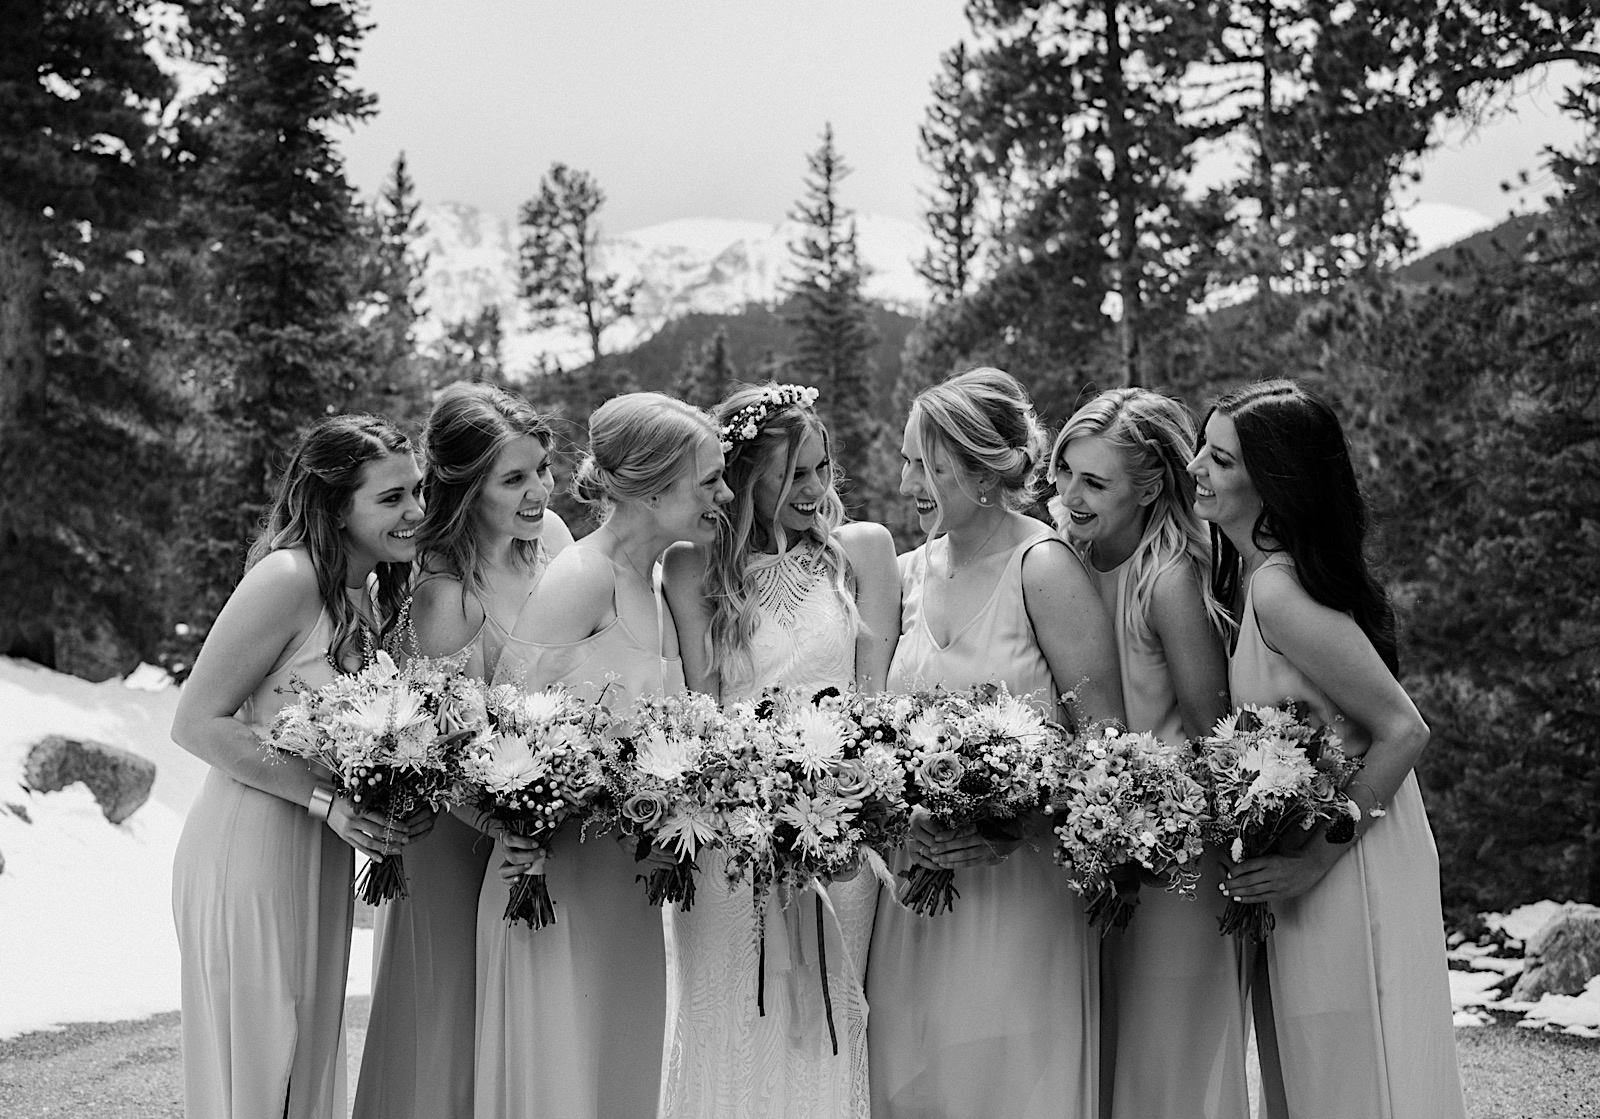 Blackstone Rivers Ranch Wedding, Colorado Wedding Photographer, Colorado Elopement Photographer, Colorado Mountain Wedding, Colorado Wedding Ideas, Colorado Wedding Inspiration, Destination Wedding in Colorado, Places to Elope in Colorado, Places to get married in Colorado, Boho Wedding Inspiration, Wedding Photography, Wedding ideas, Wedding Inspiration, Bridal Party Photos, Wedding party photos, bridesmaids photos, Bridesmaids bouquets, Bridesmaids dresses